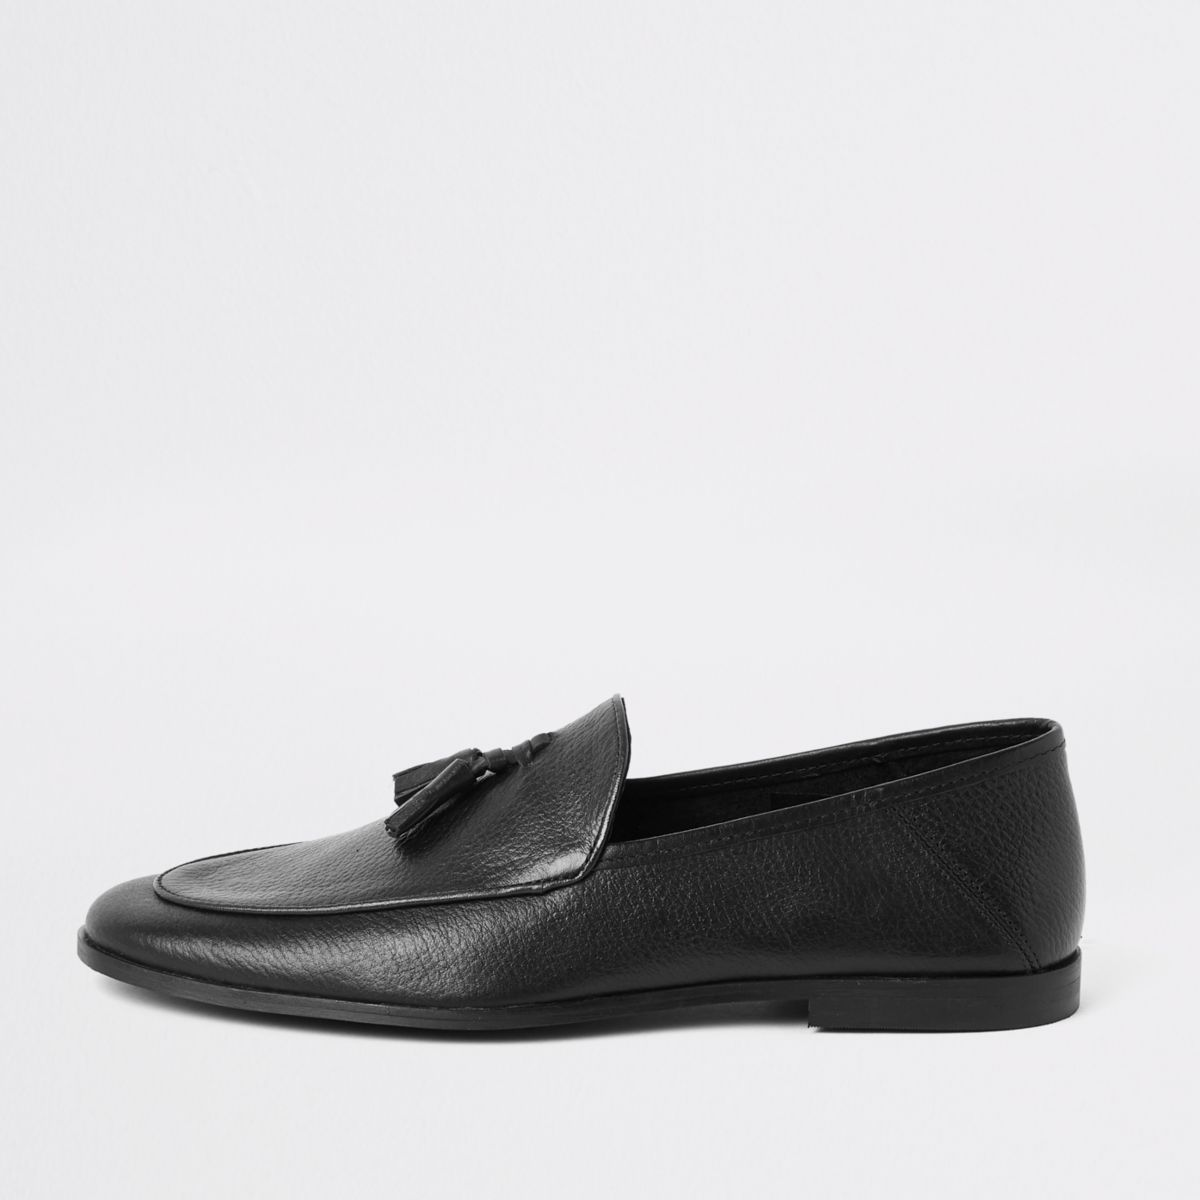 Black textured leather tassel loafer